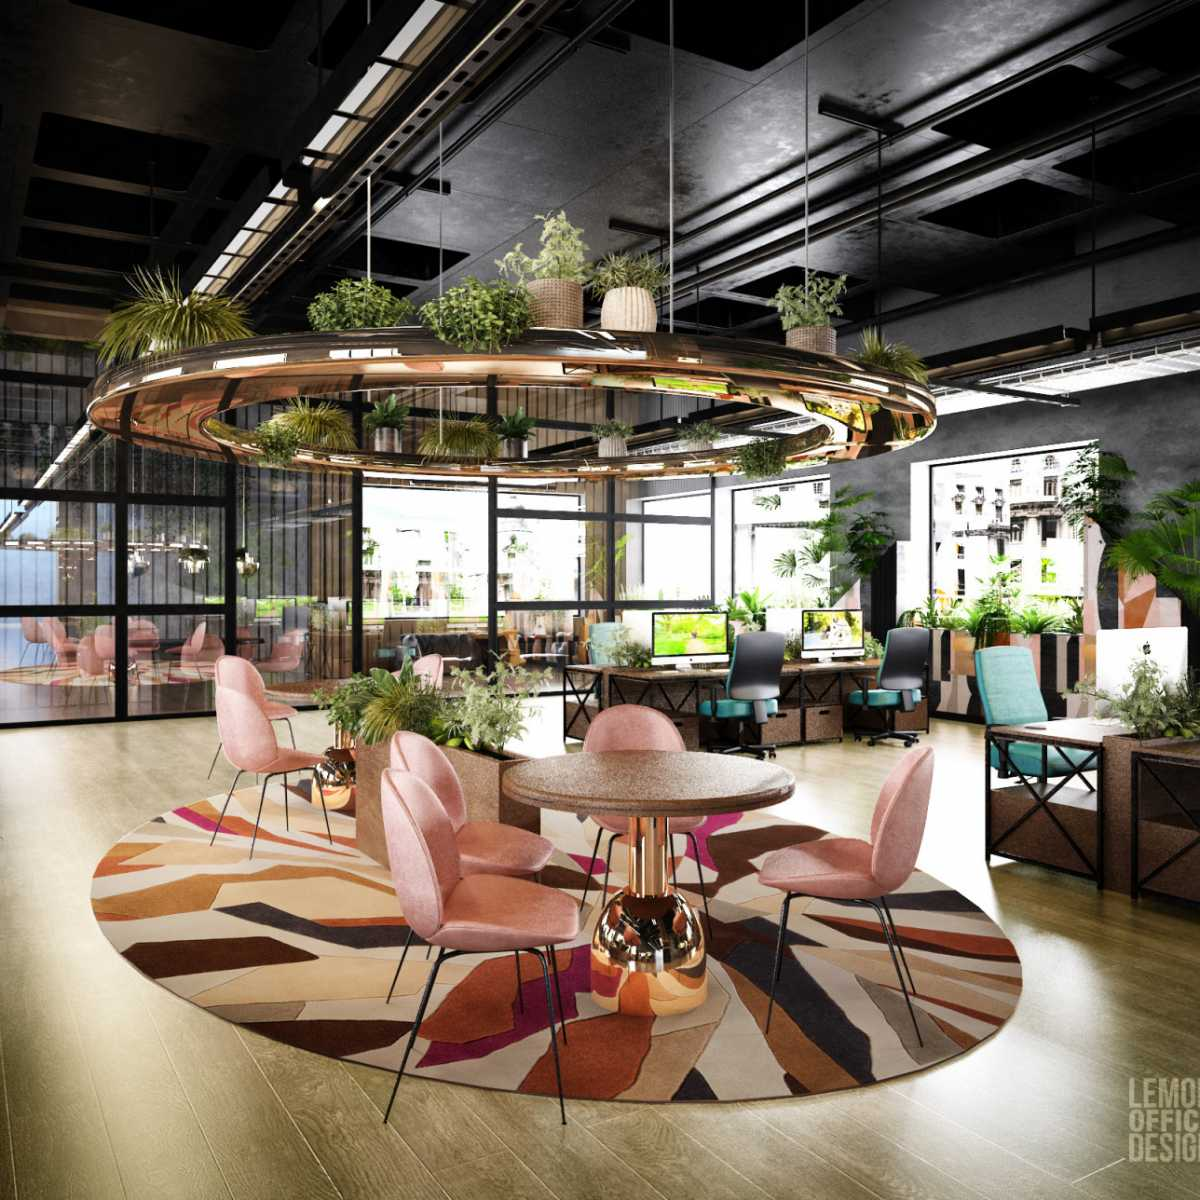 Architectural and design trends in 2021